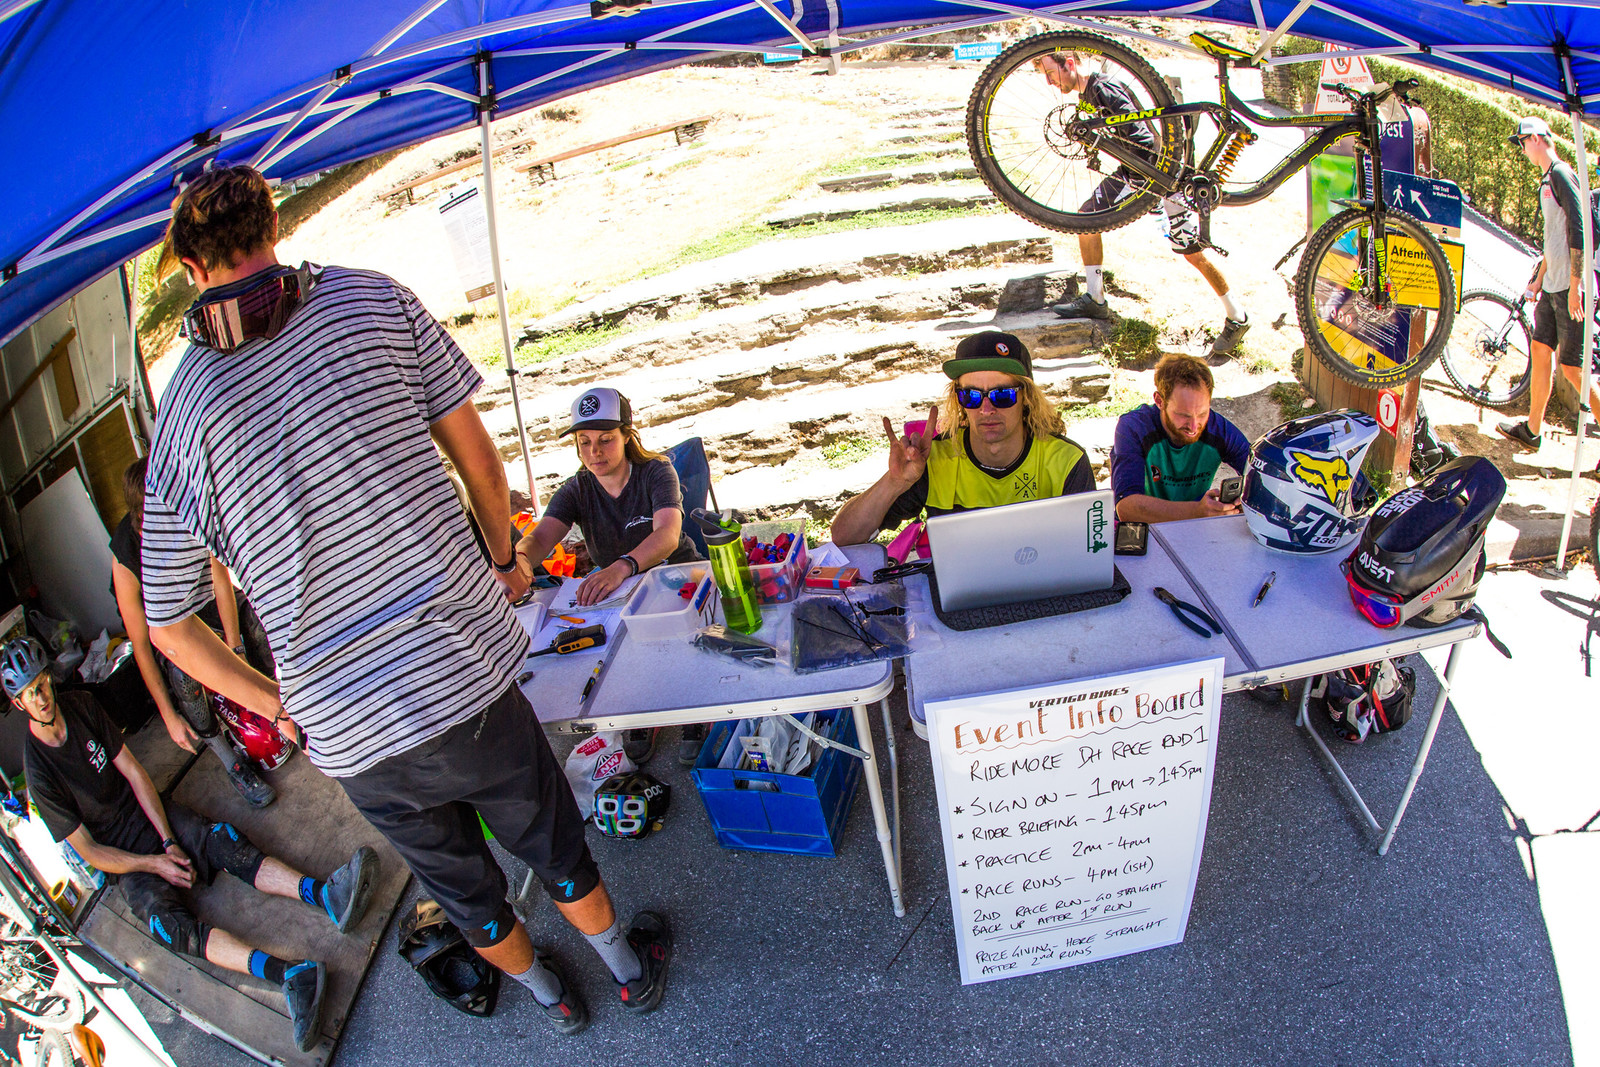 Club Vibe - Homegrown NZ Downhill - Vertigo Bikes Ride More DH Series Race 1 - Mountain Biking Pictures - Vital MTB